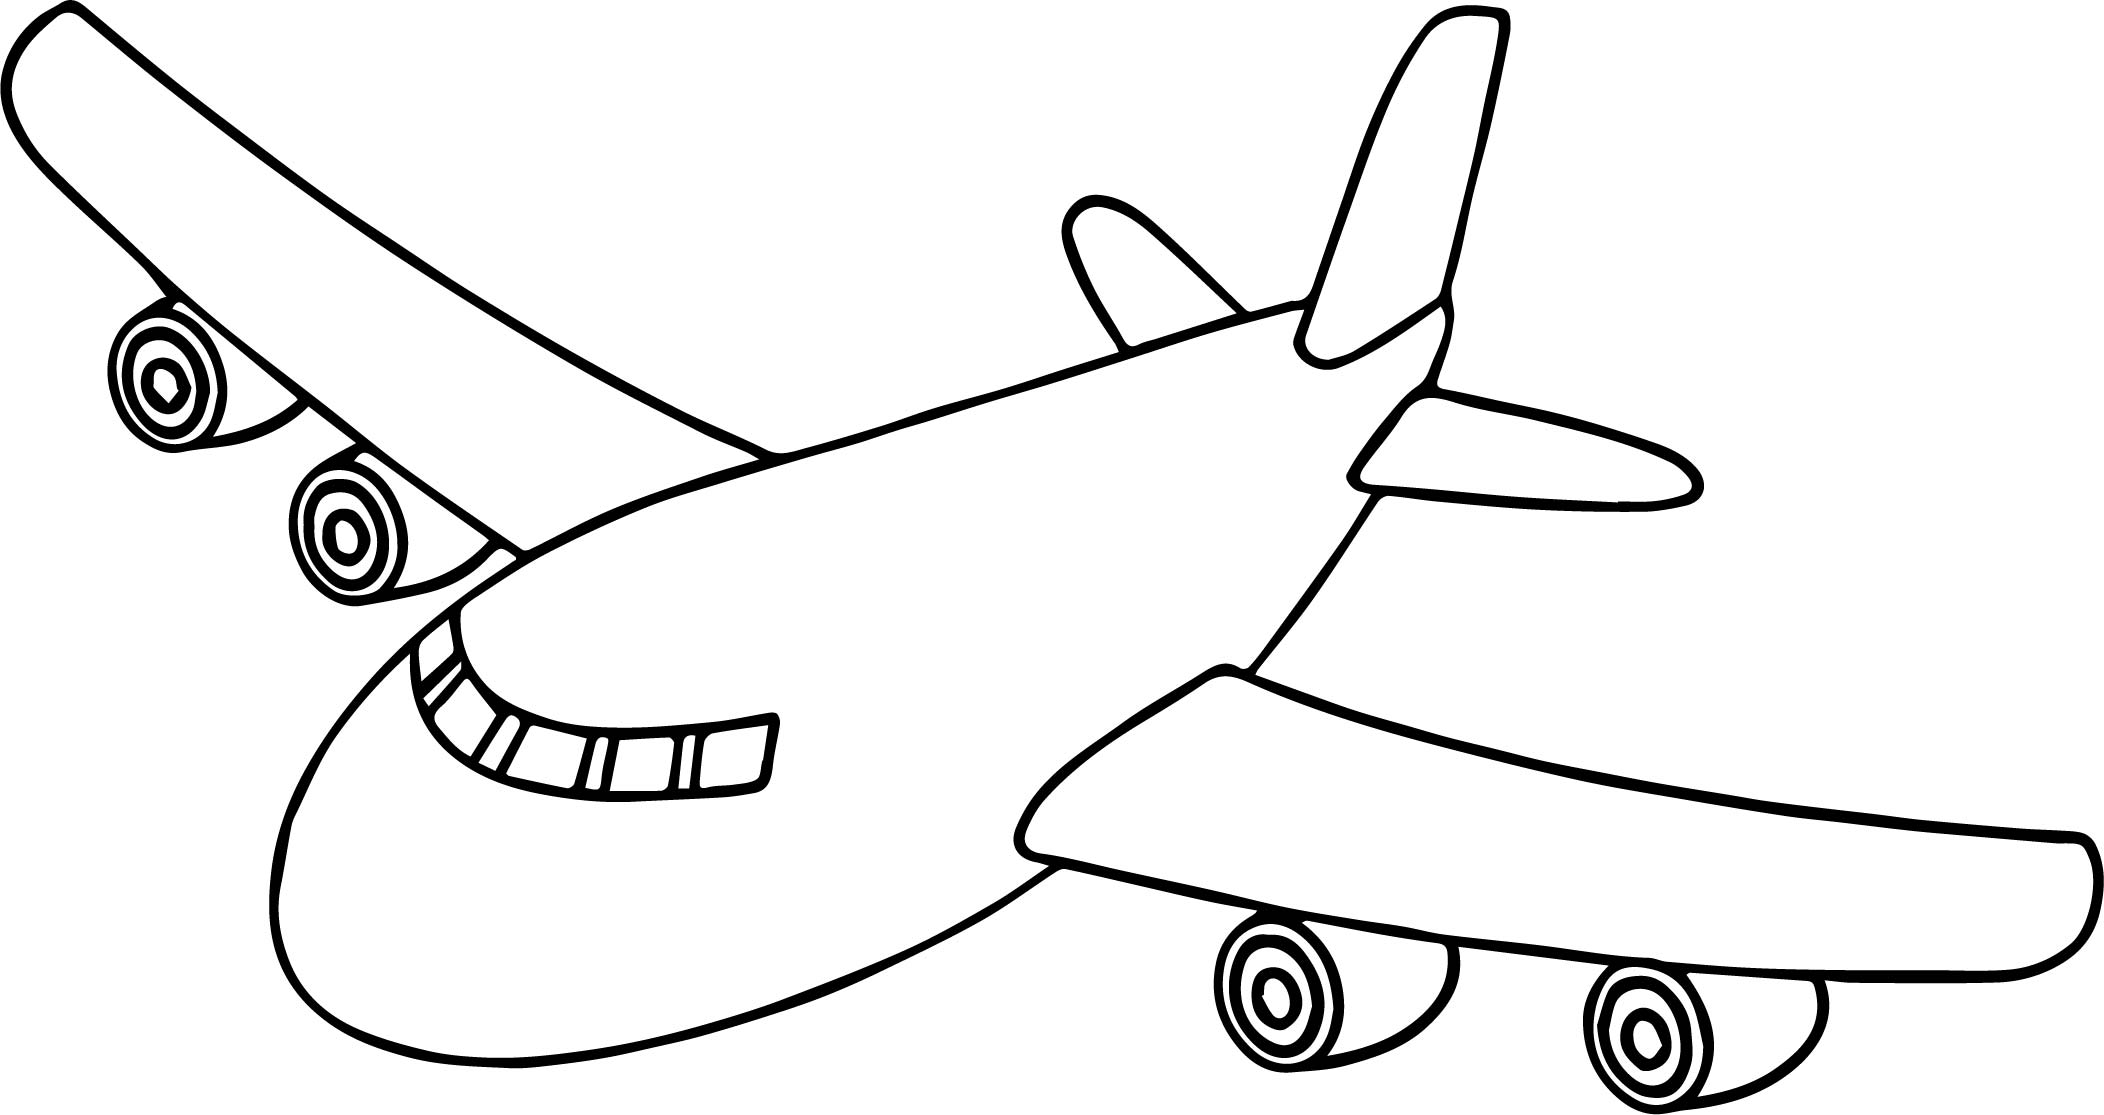 plane coloring sheets airplane coloring pages coloring pages to download and print plane sheets coloring